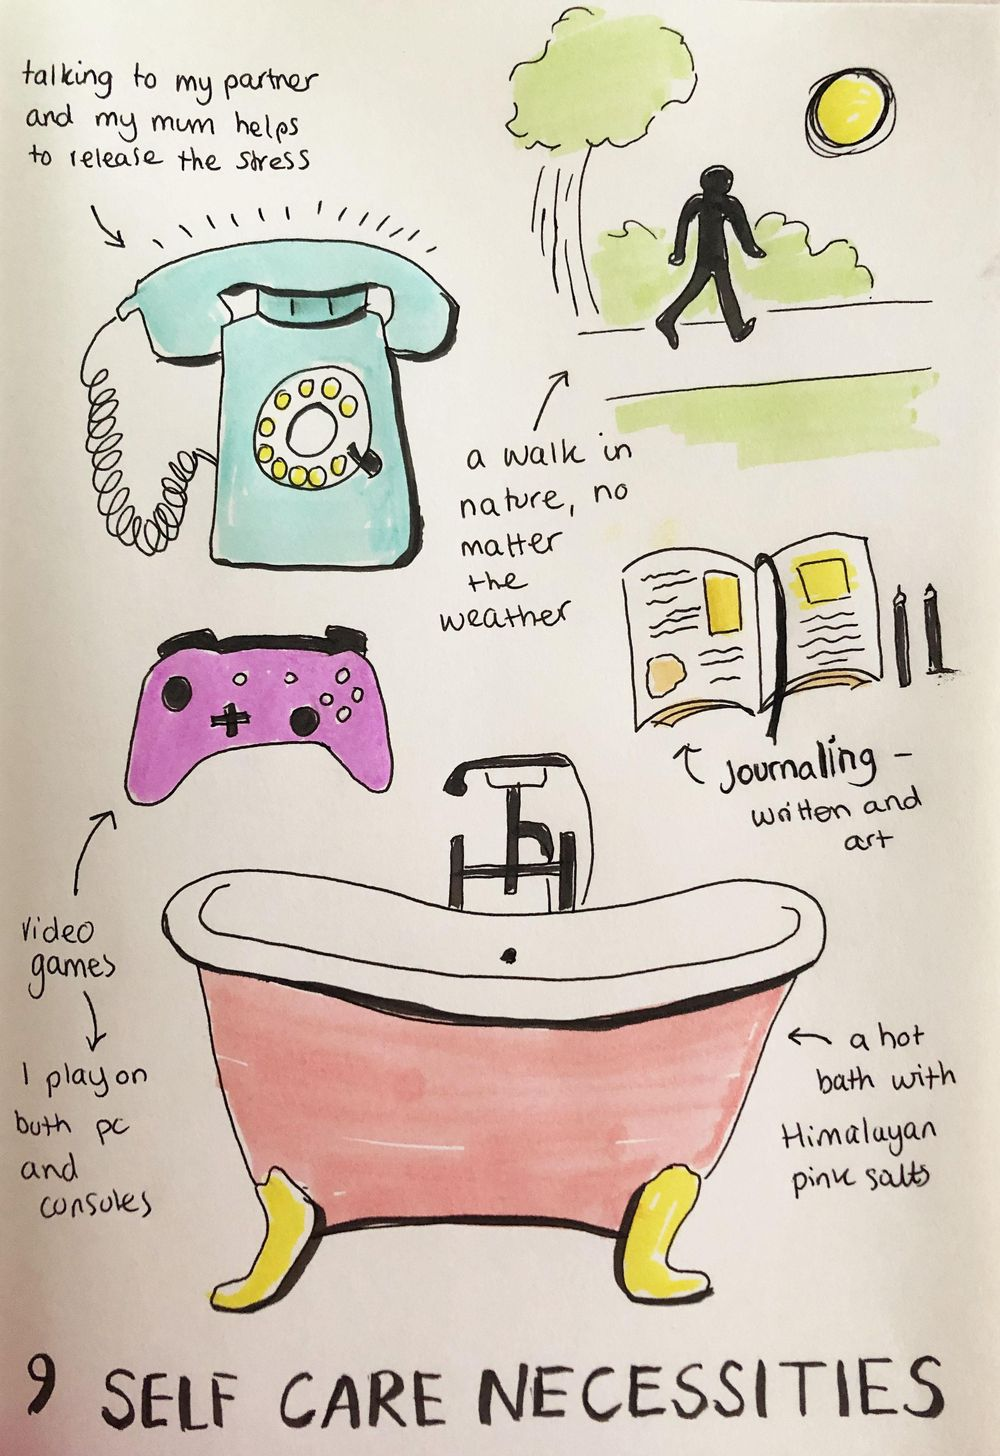 Daily Illustrated Journaling Prompts - image 6 - student project